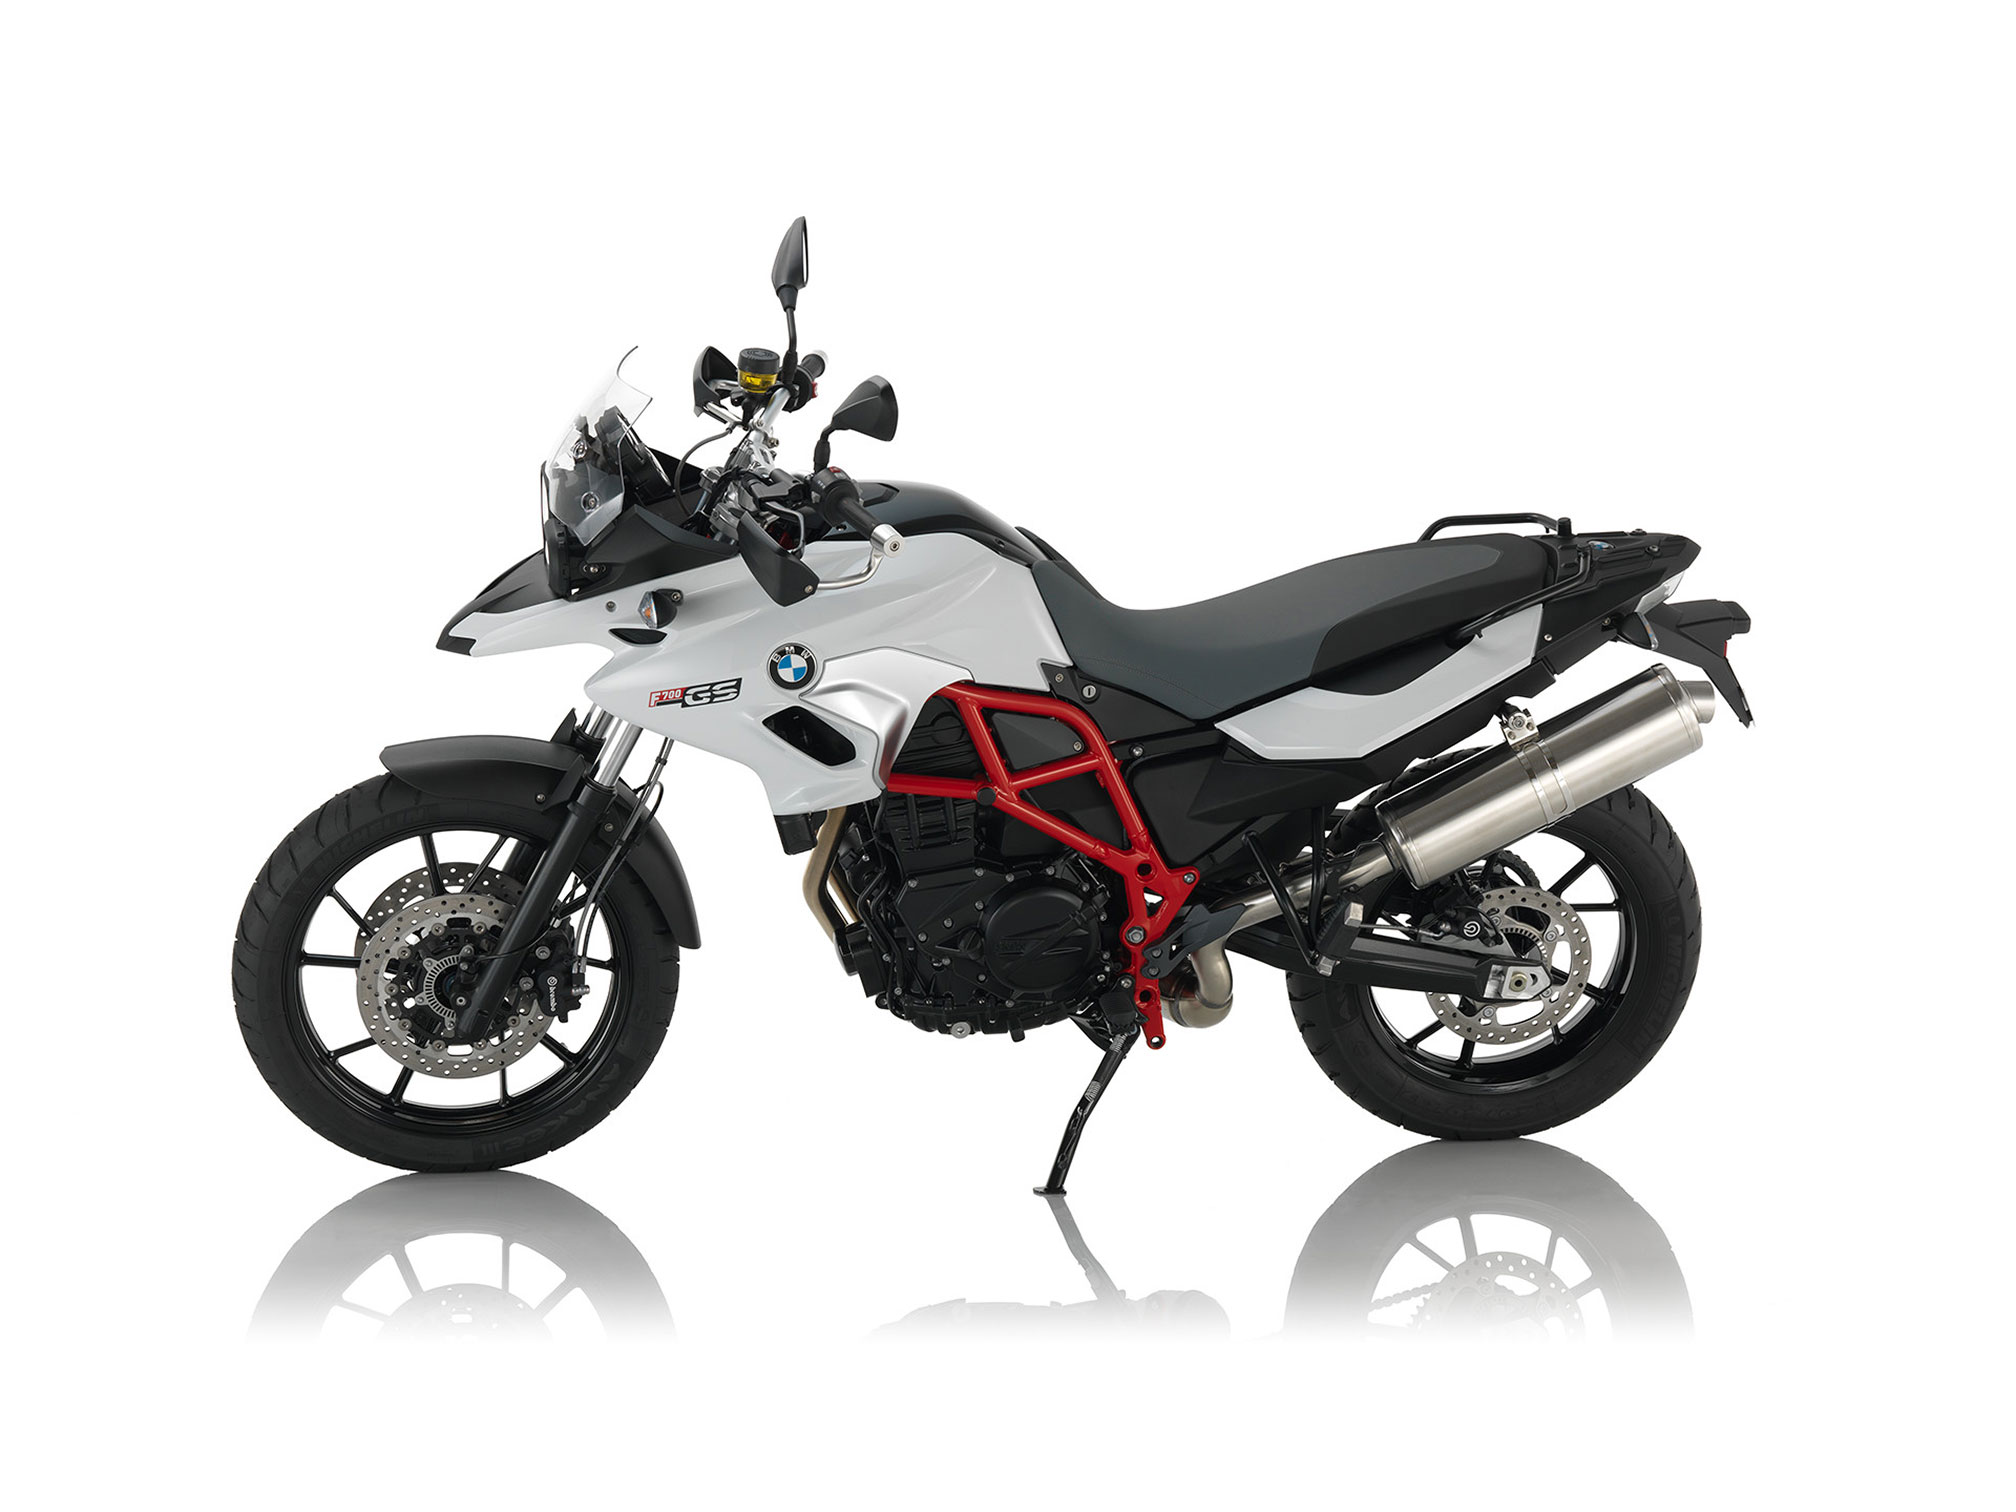 BMW F700 GS Motorcycle and scooter rentals in Barcelona (Spain)